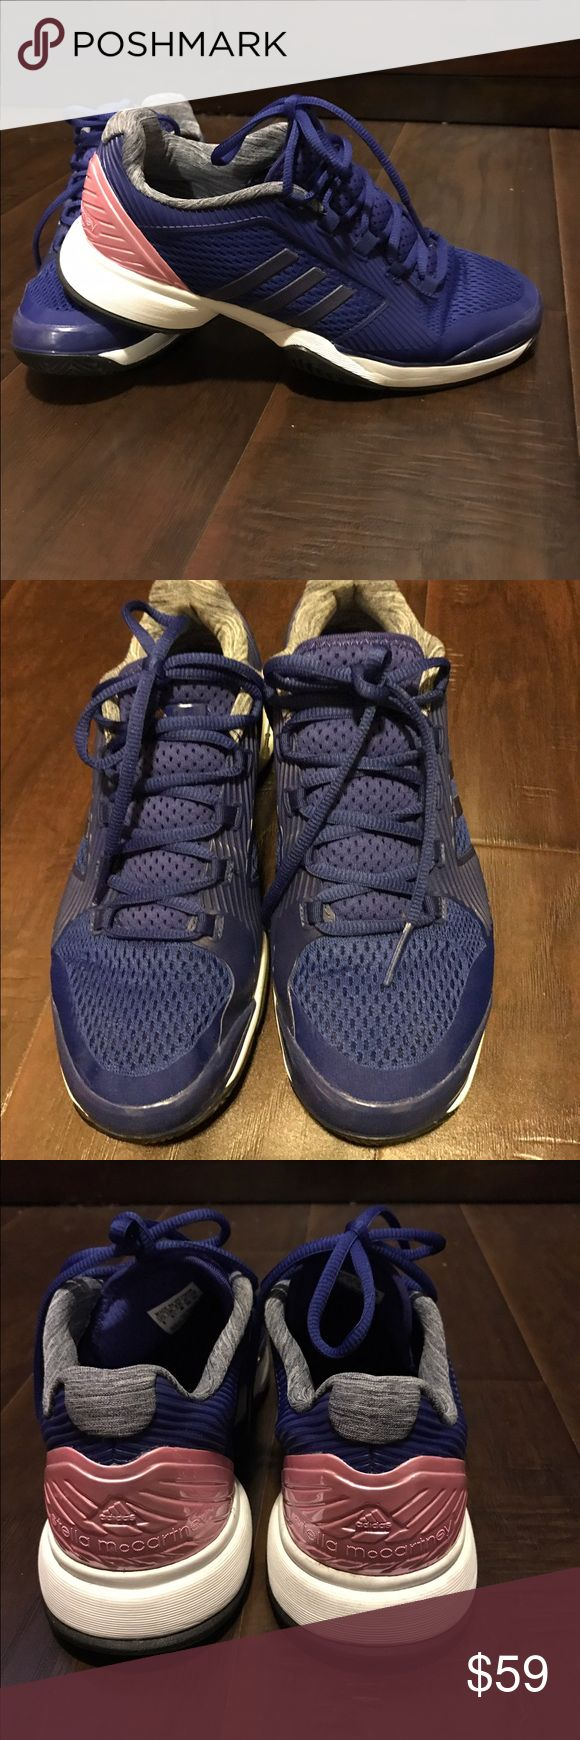 Stella maccartney barricade tennis shoes by adidas Worn twice and still in awesome condition. Adidas by Stella McCartney Shoes Athletic Shoes